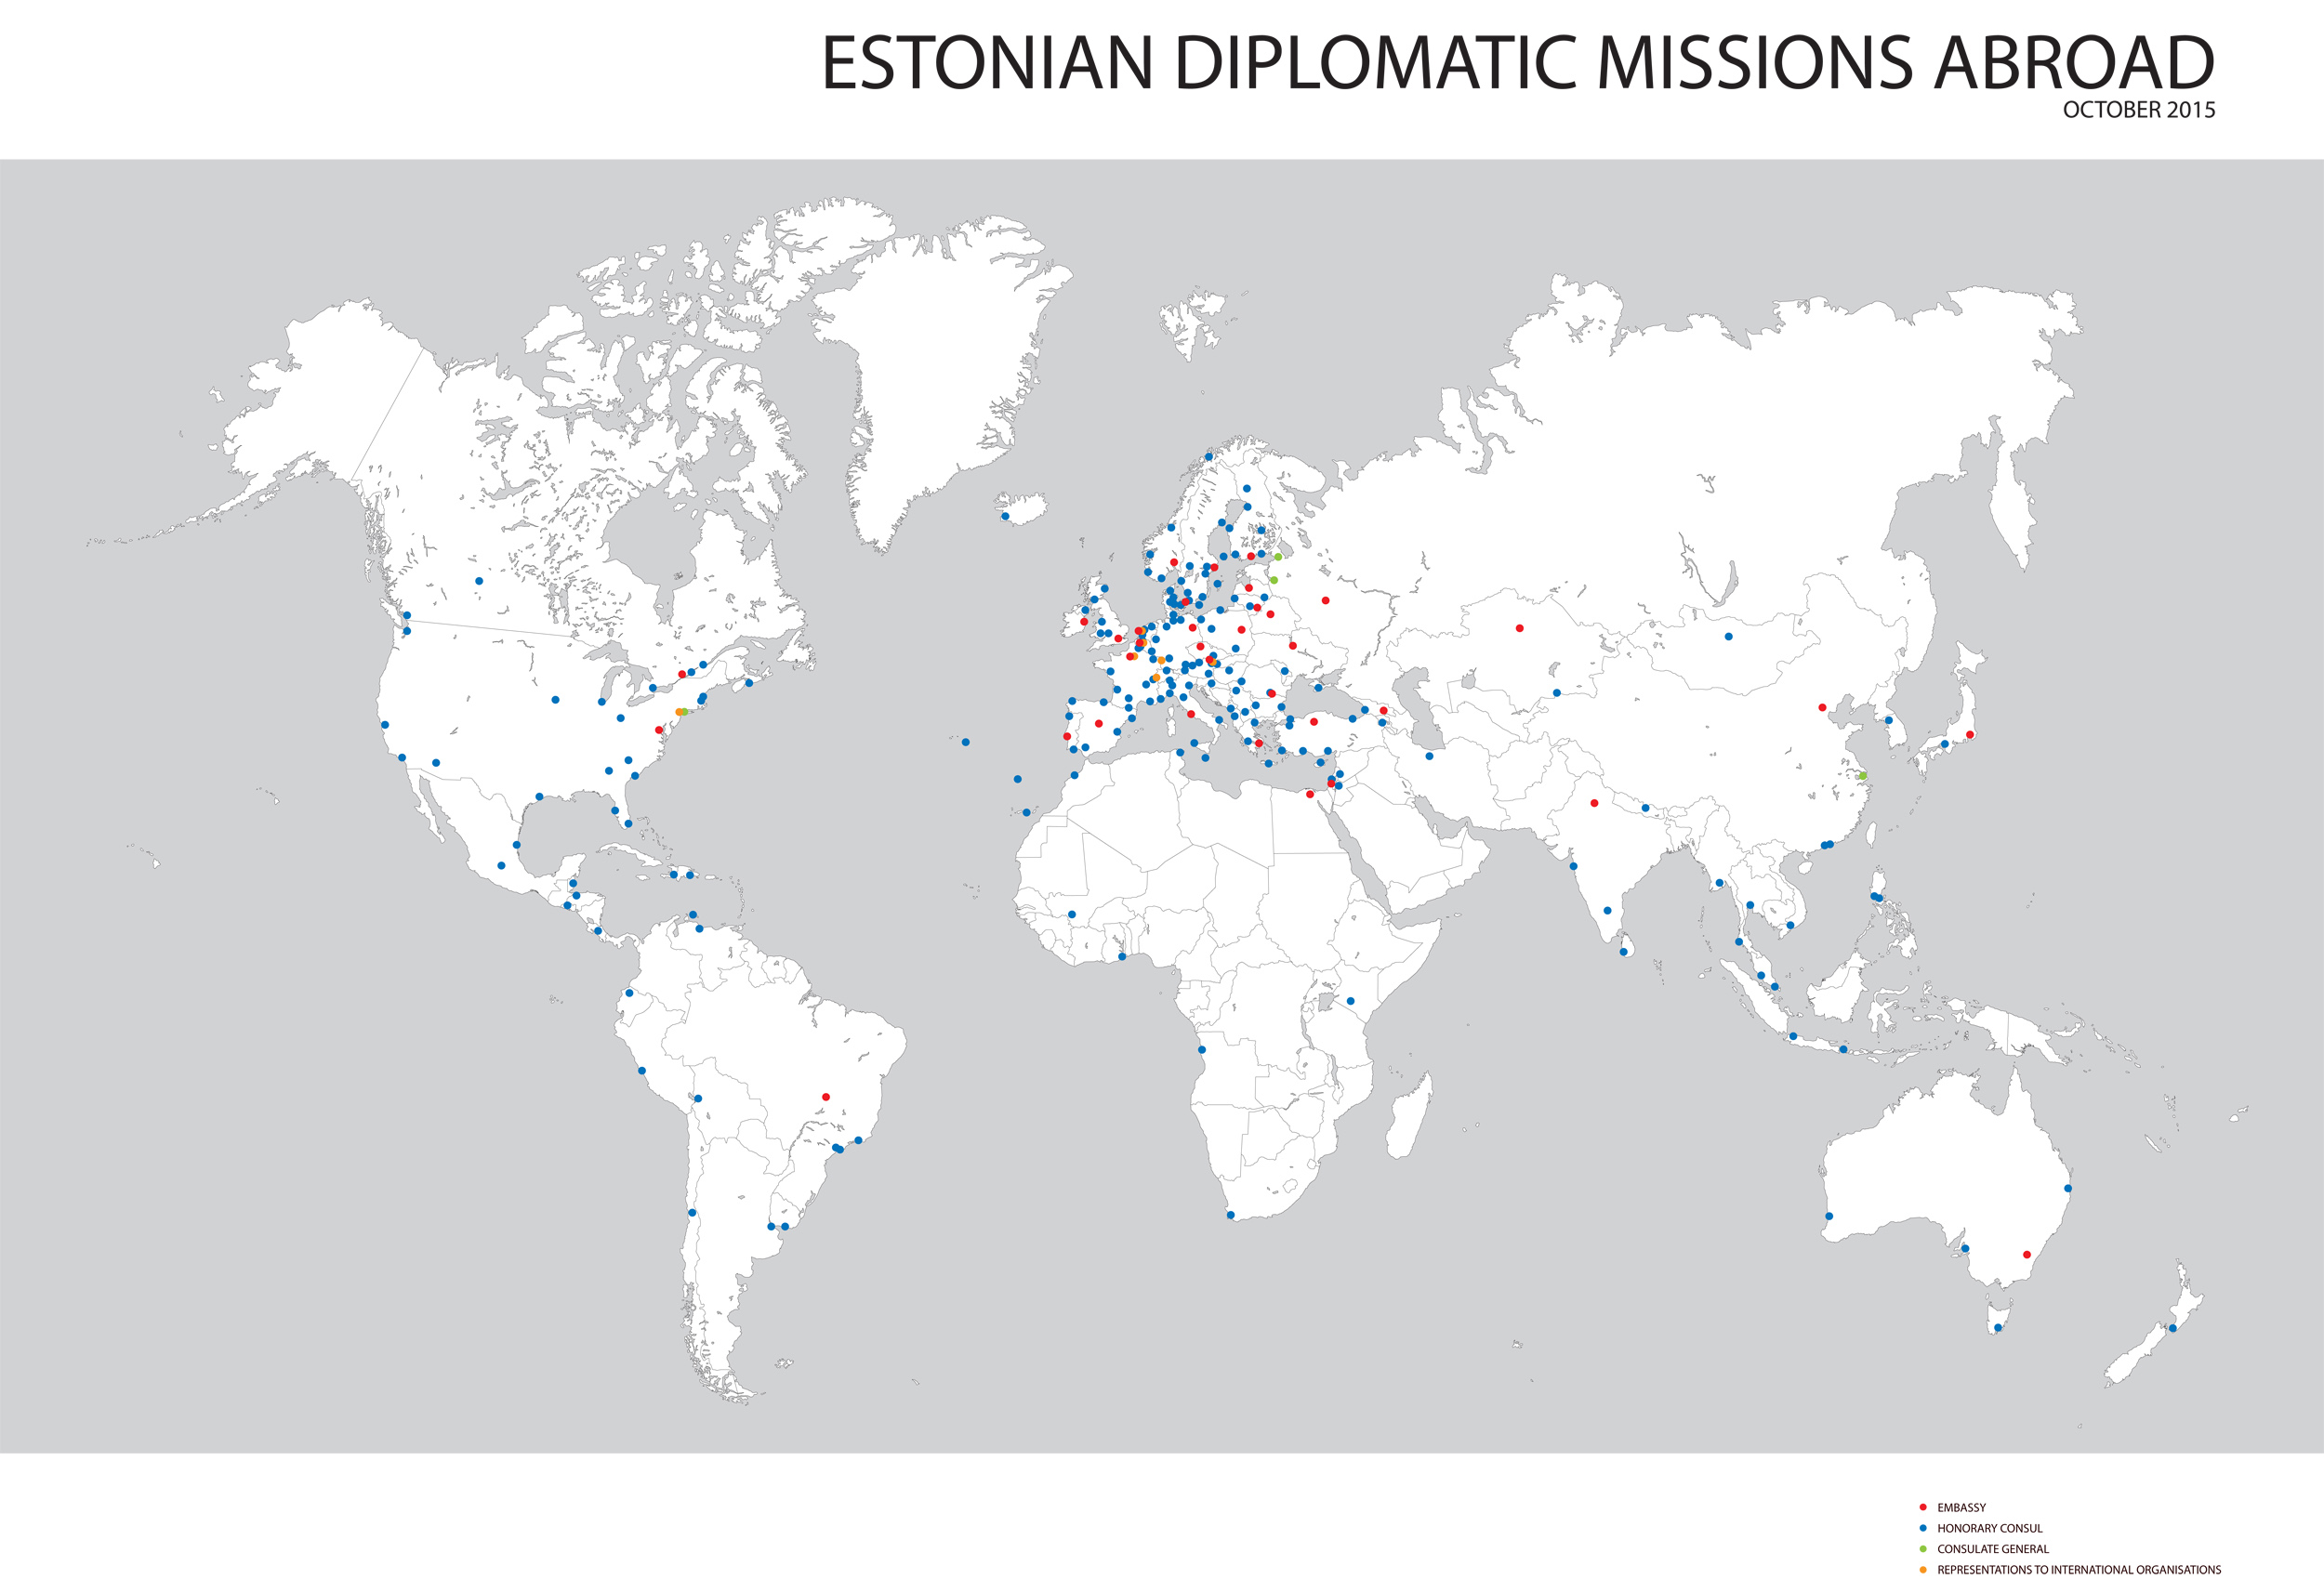 Embassies and Representations Ministry of Foreign Affairs